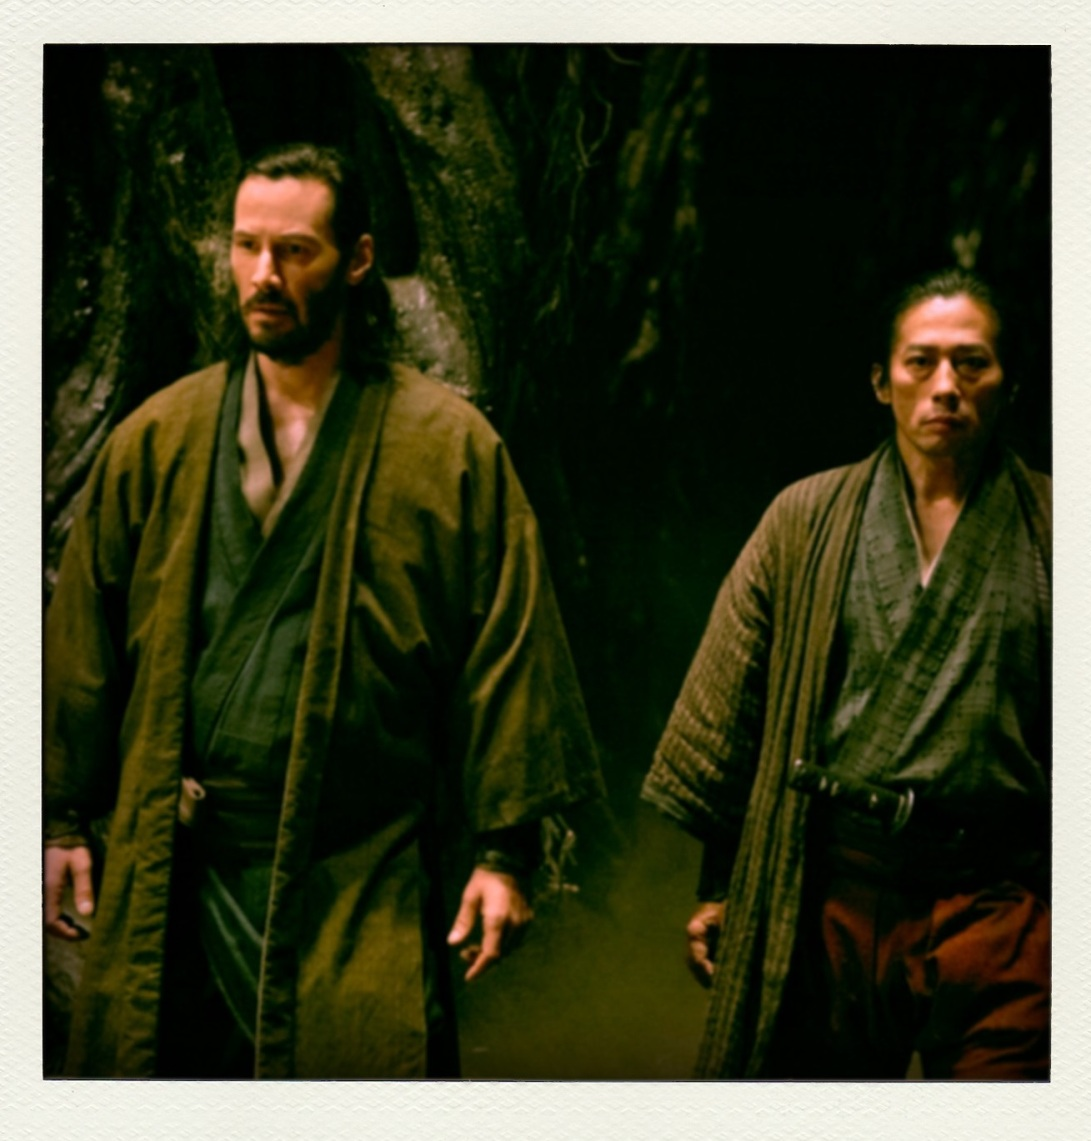 47 Ronin @ www.cinemascream.co.uk